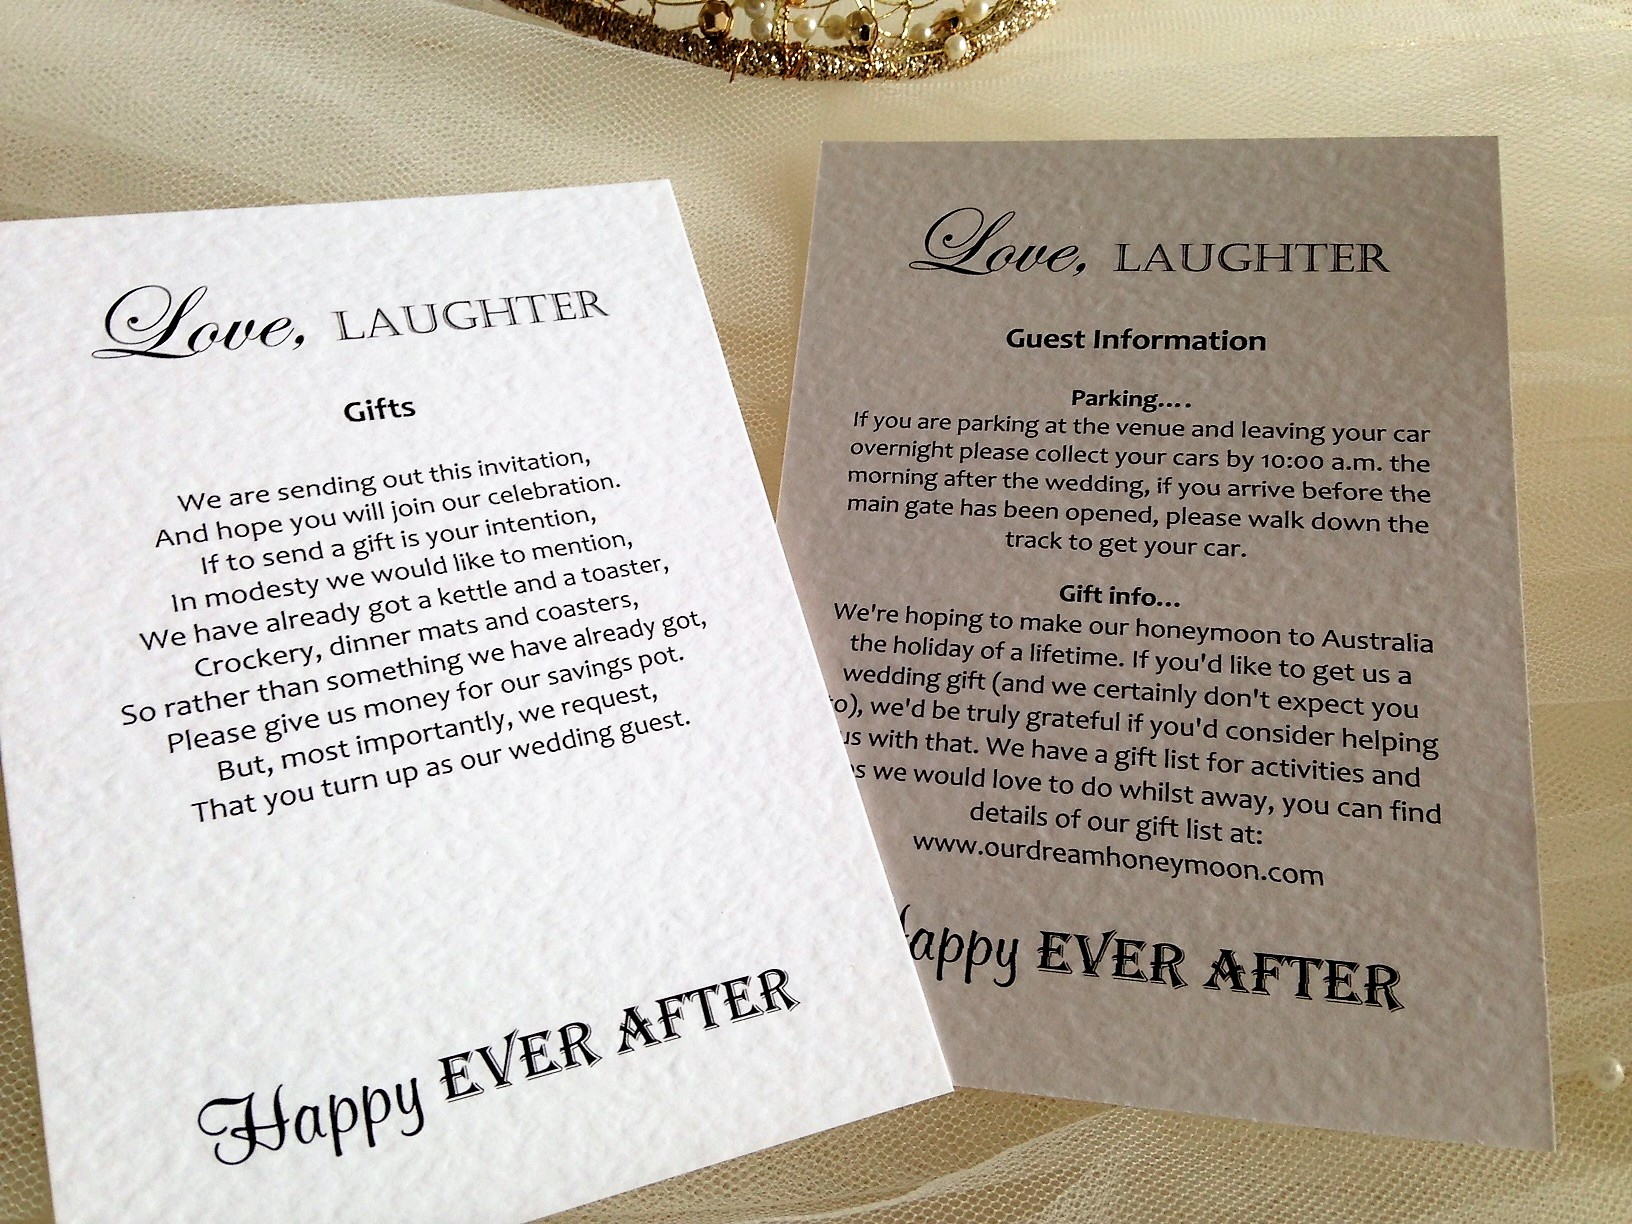 How to ask for a wedding gift of cash - Daisy Chain Invites